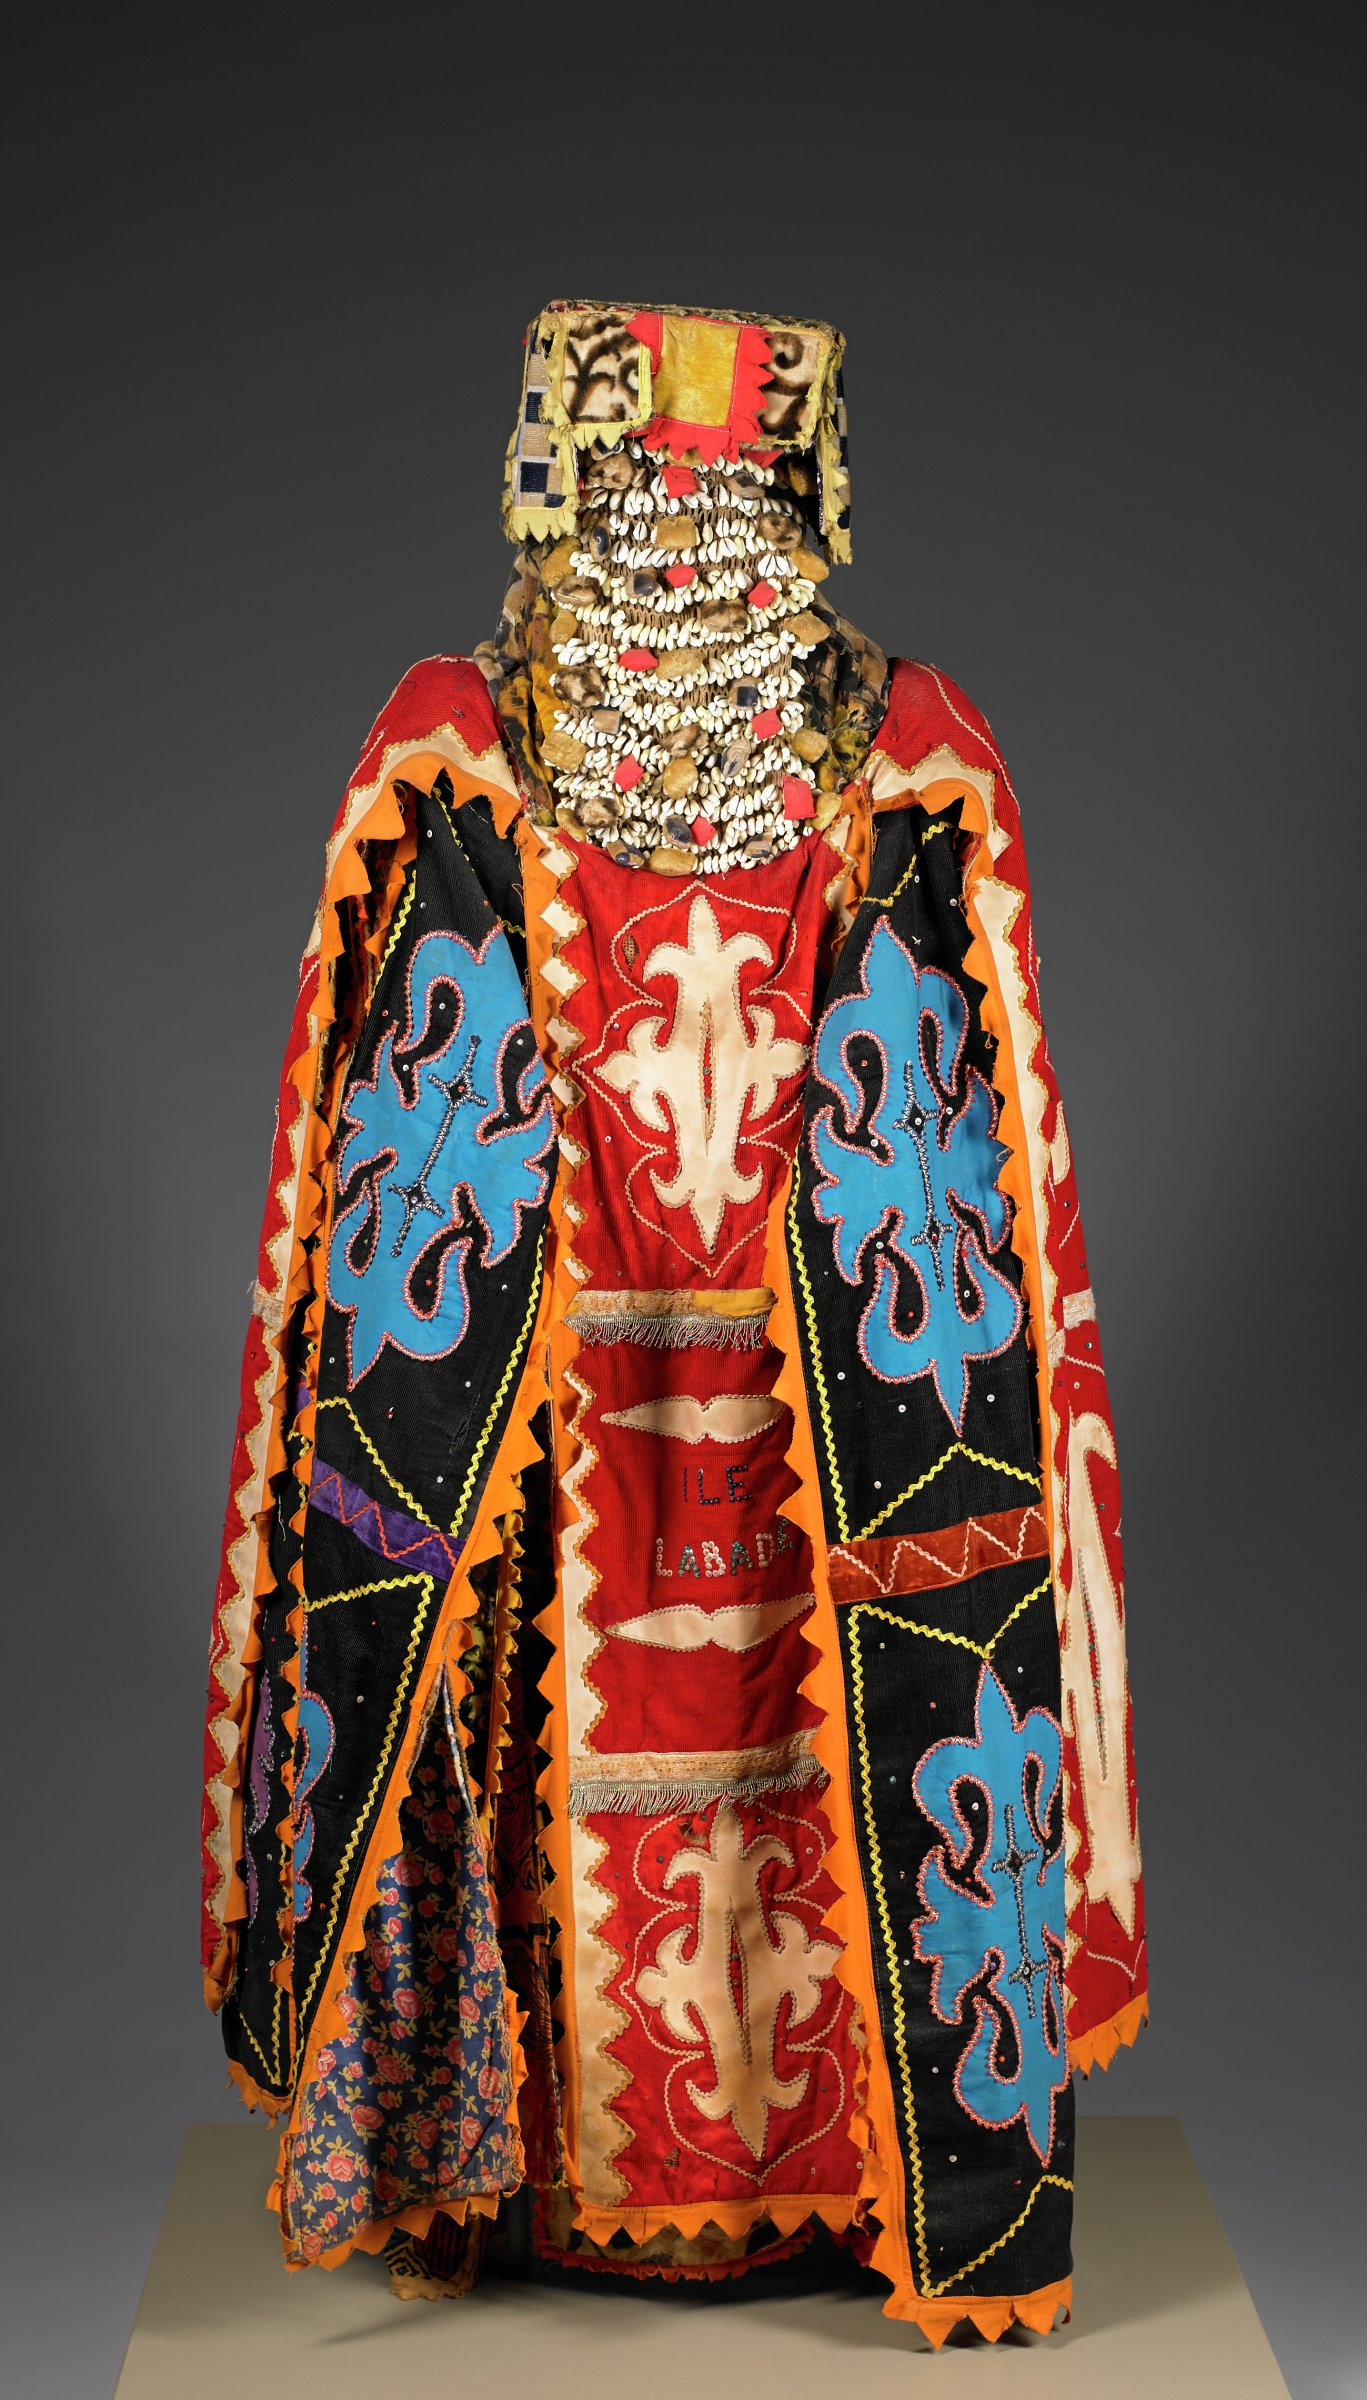 Costume for Egungun Masquerade, Yoruba people, Republic of Benin (formerly Kingdom of Dahomey), African, cotton cloth, corduroy, sequins, rickrack, Asian rug fragment, cowrie shells, amulets